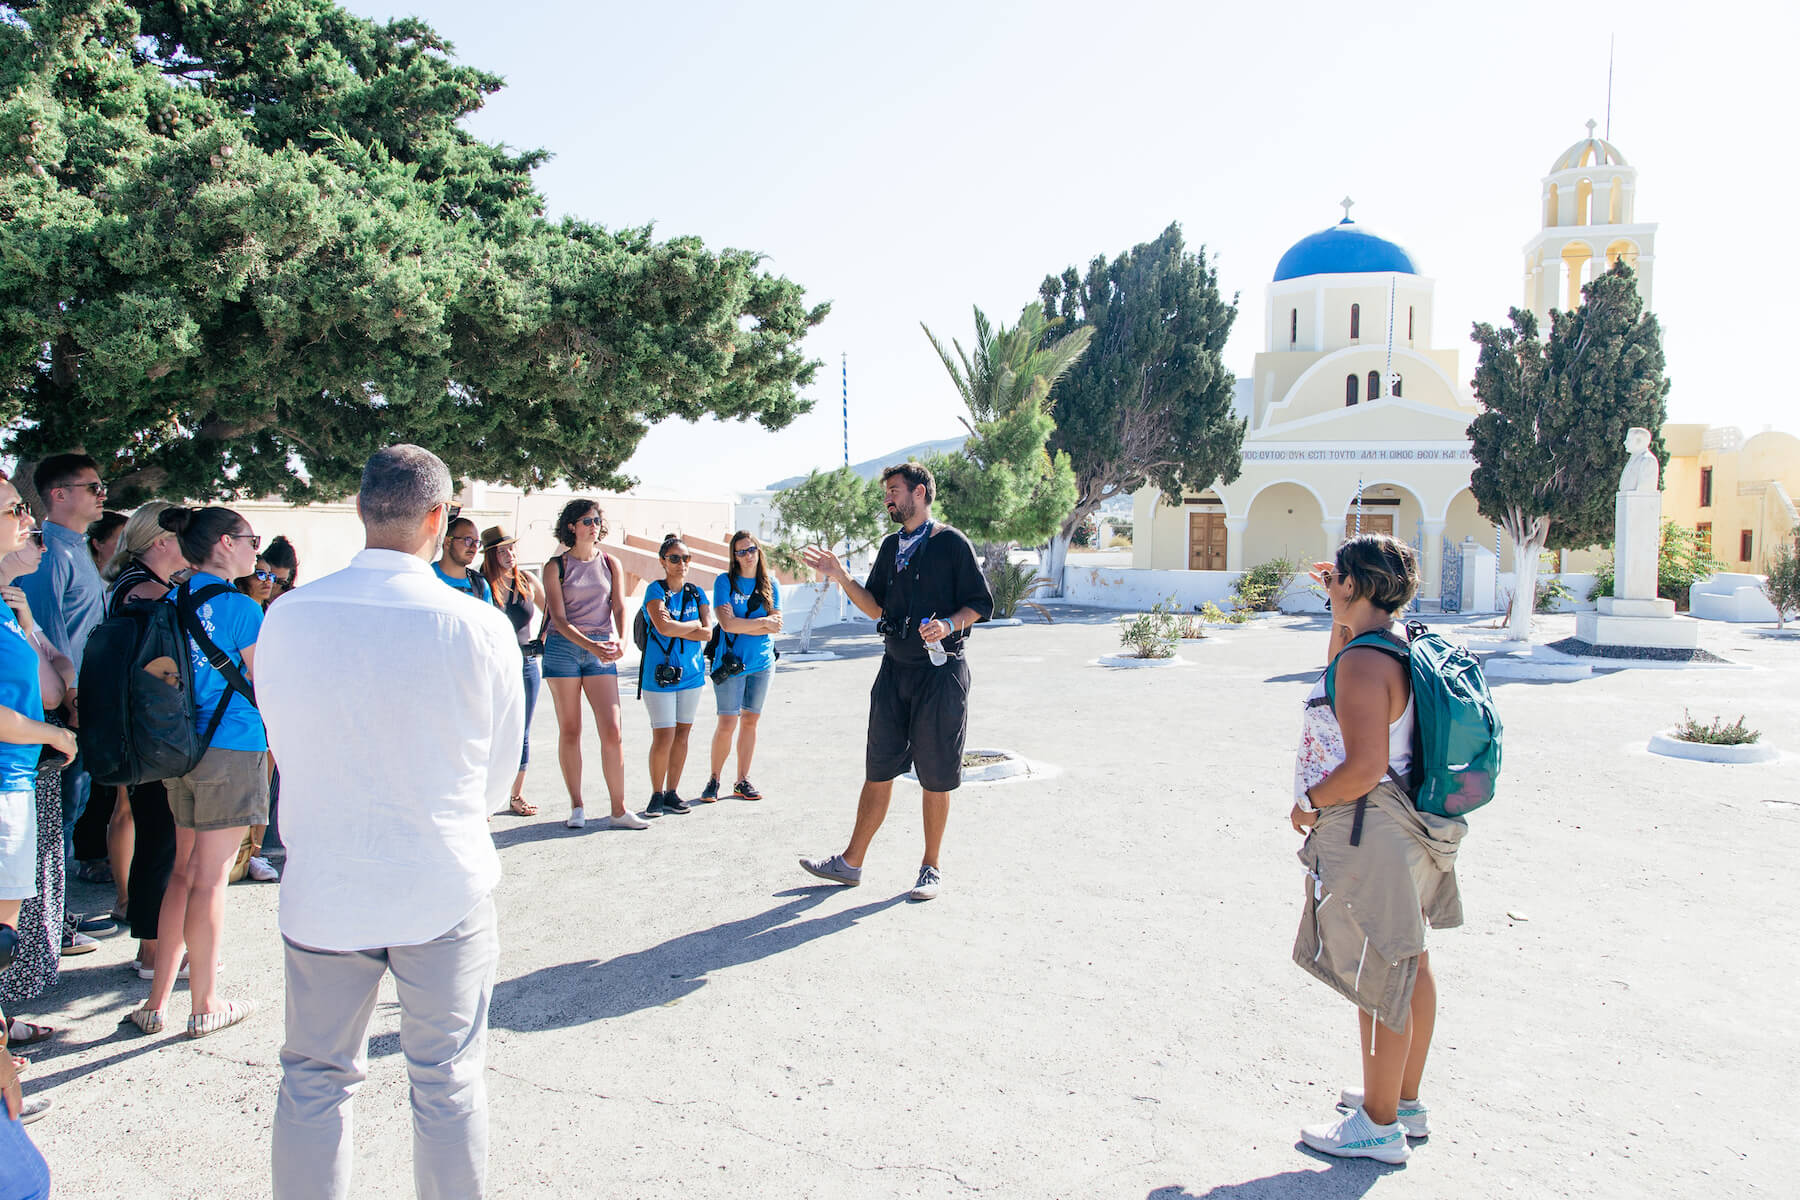 Photographers in a group listening to a speaker in public square in Santorini, Greece.